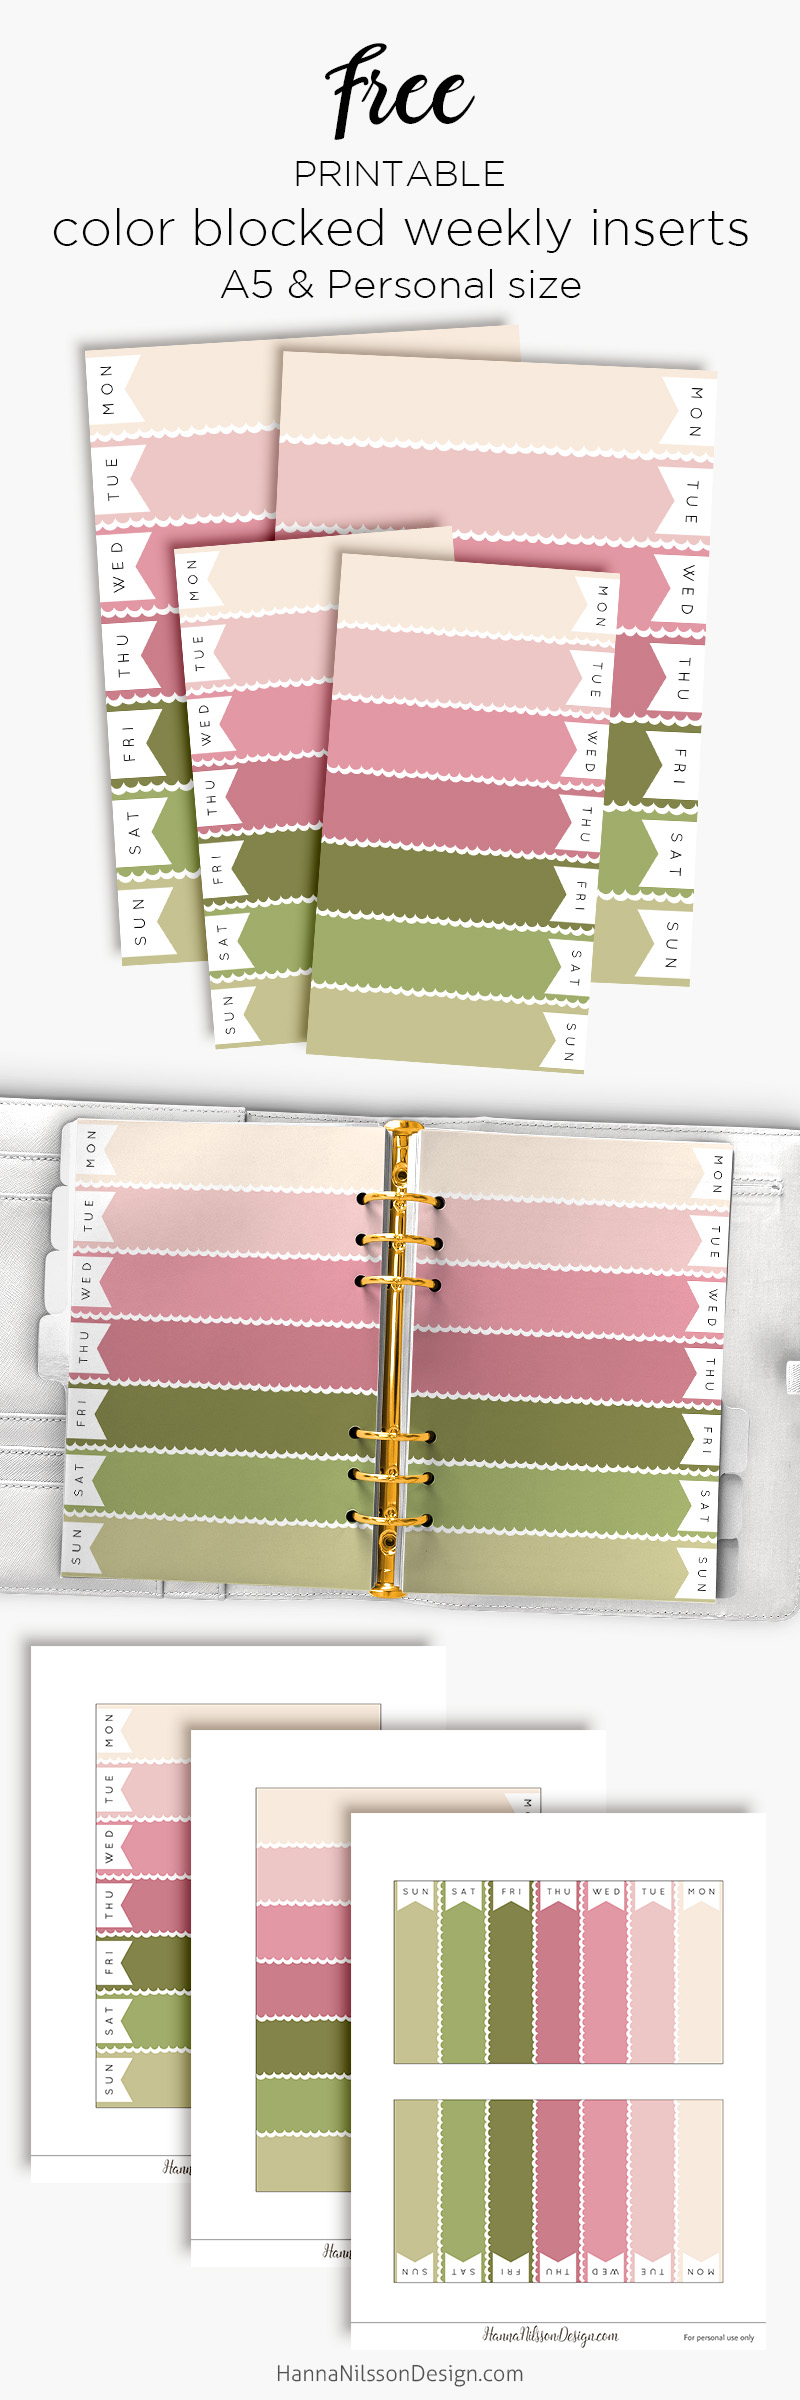 graphic about Free A5 Planner Printables identified as Purple spring colour blocked weekly planner inserts Totally free